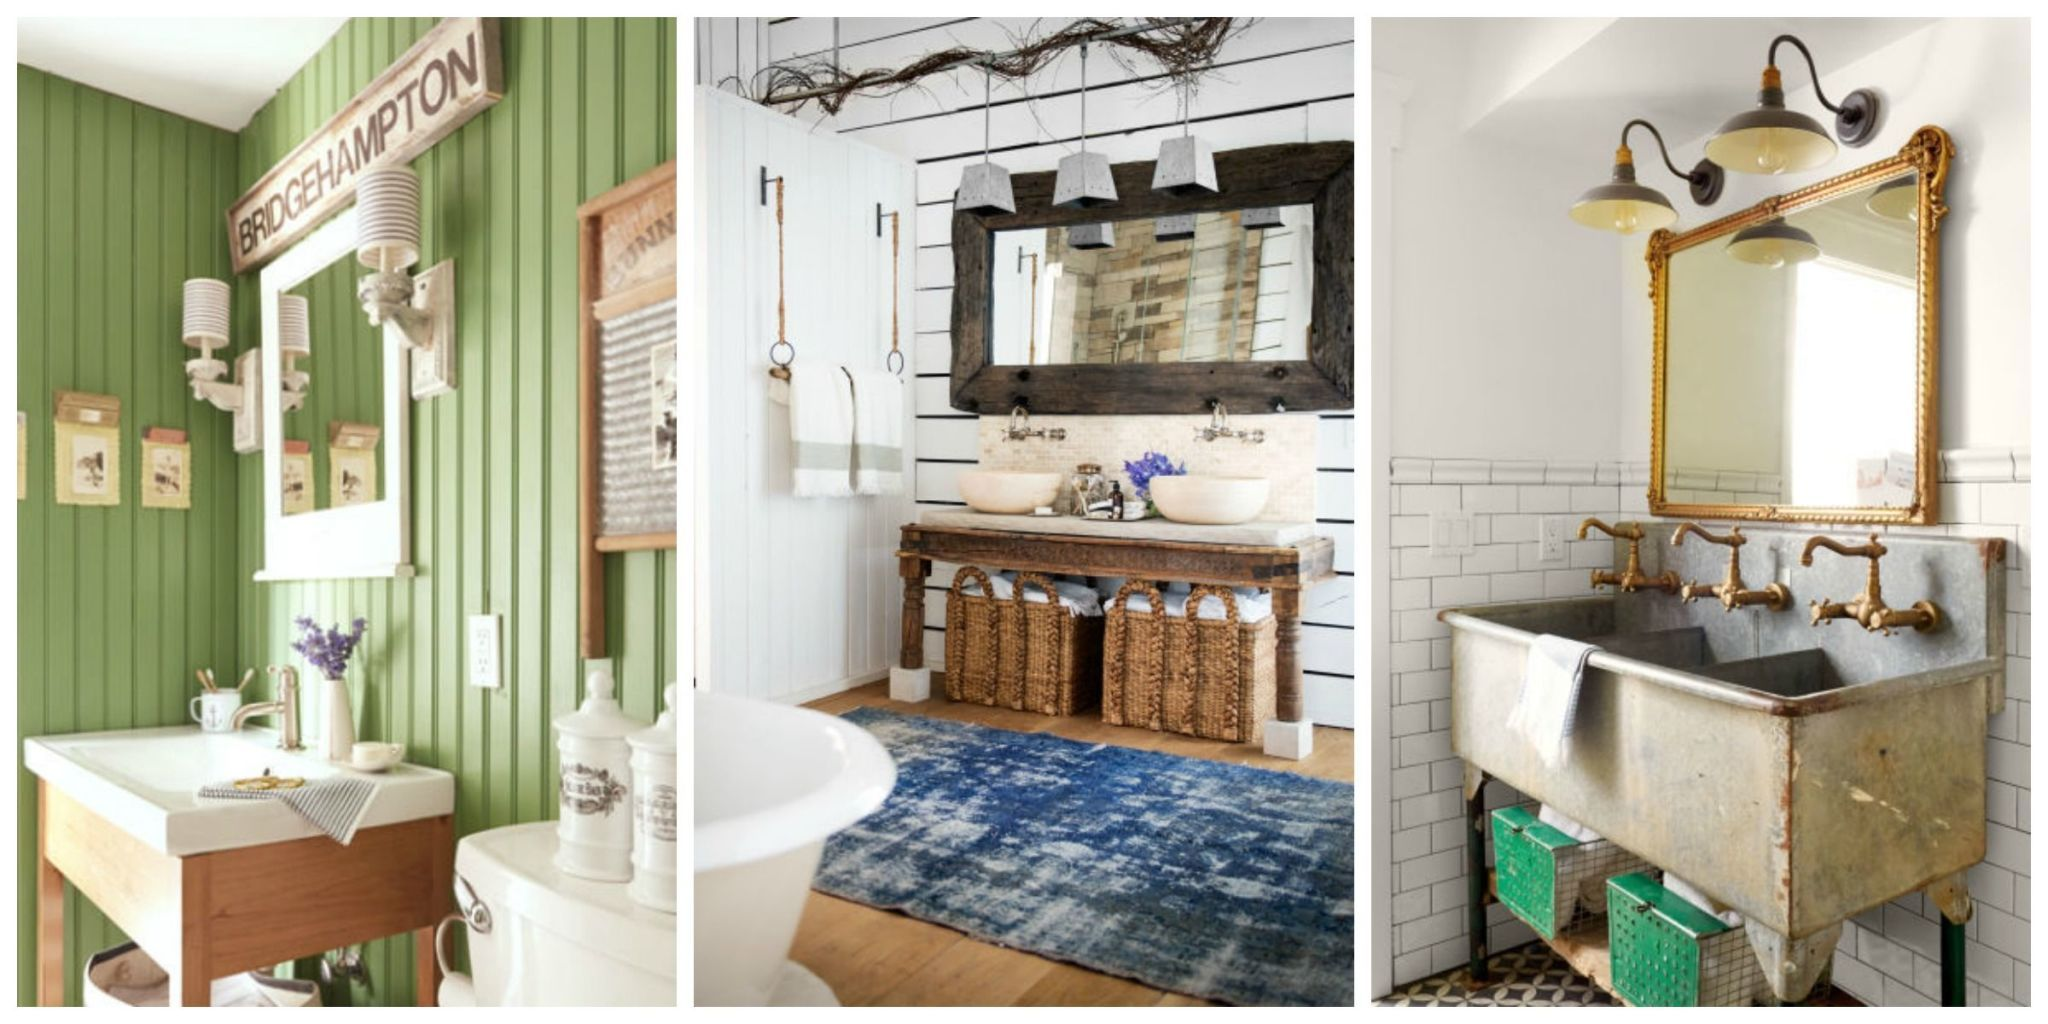 Exceptionnel From Vintage Fixtures To Bold Wallpaper Patterns, These Beautiful Bathroom  Design Ideas Will Make Your Homeu0027s Smallest Room The Most Peaceful Spot In  The ...